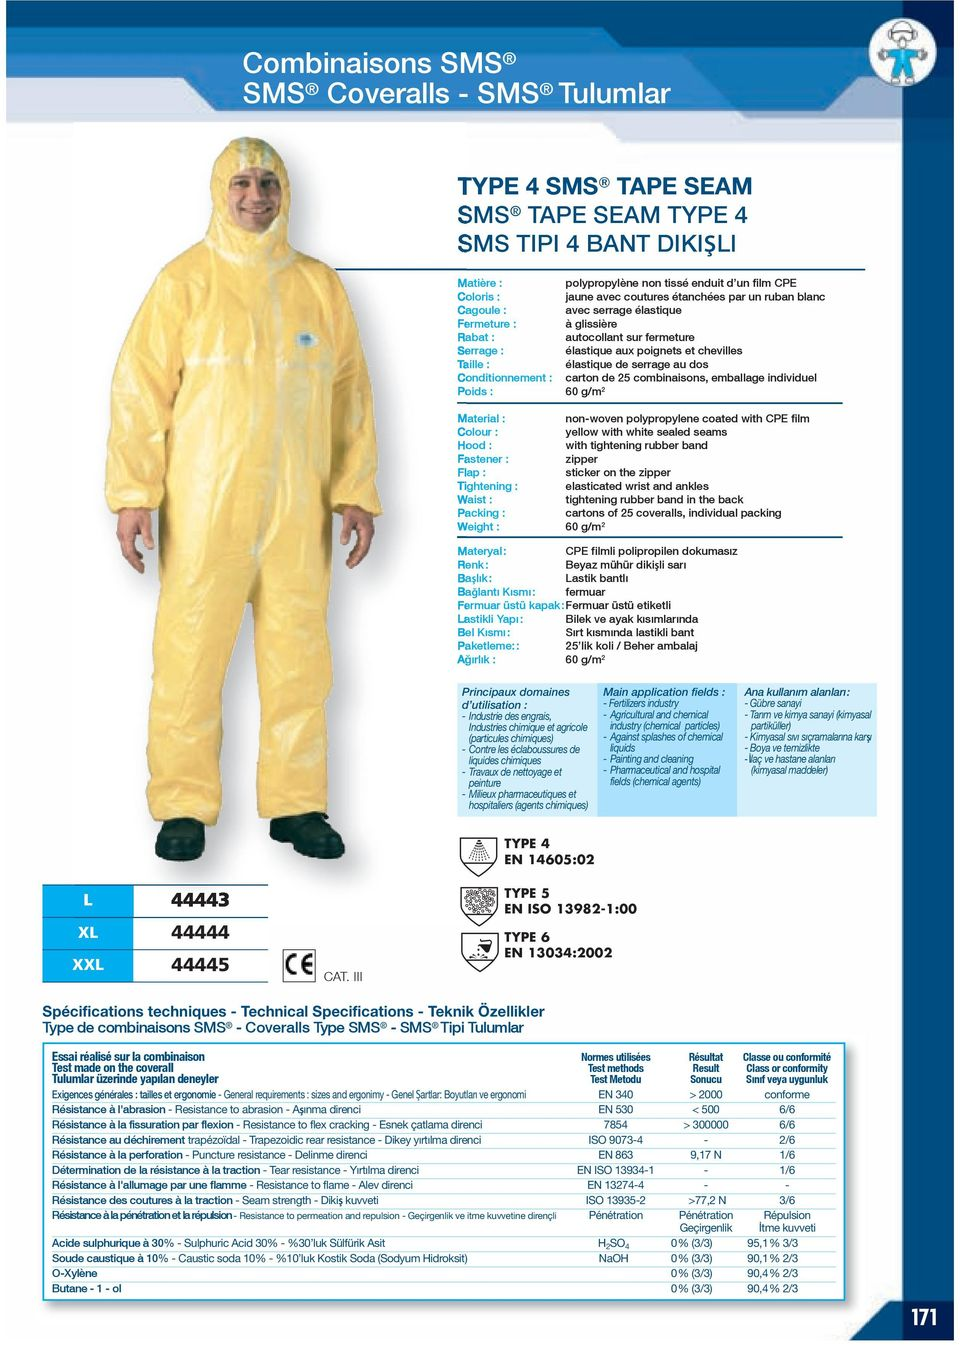 serrage au dos Conditionnement : carton de 25 combinaisons, emballage individuel Poids : 60 g/m 2 non-woven polypropylene coated with CPE film yellow with sealed seams Hood : with tightening rubber